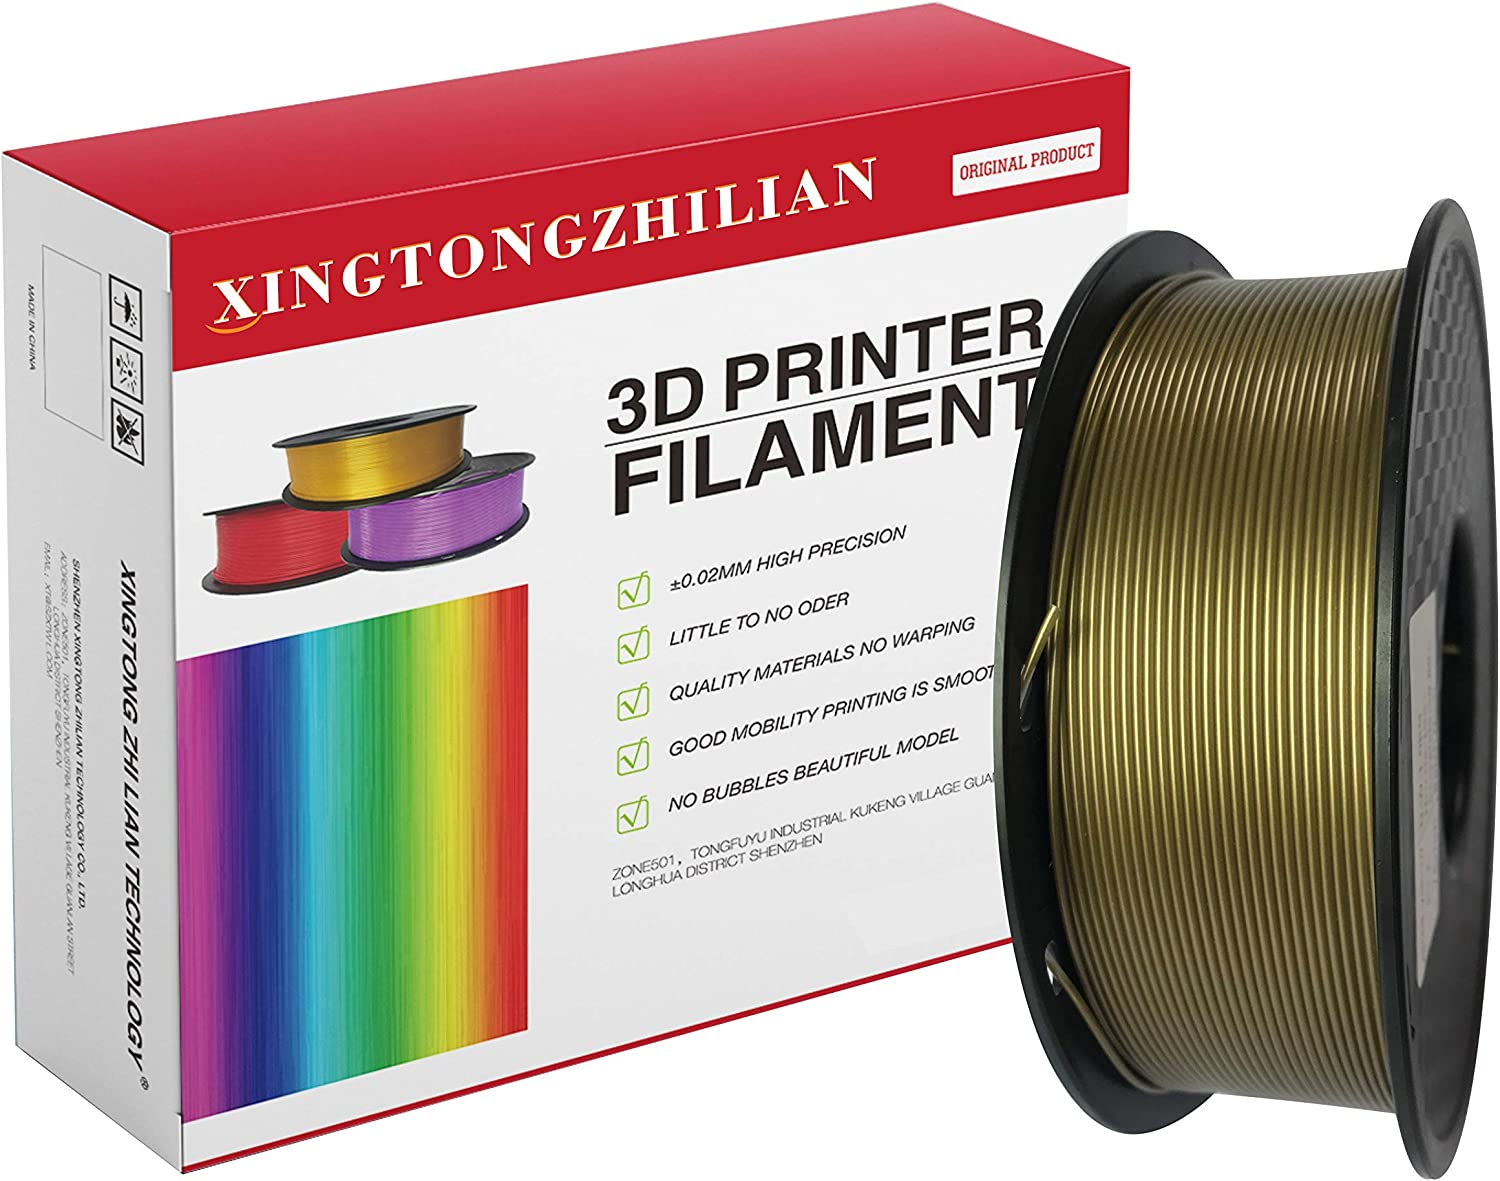 Xingtong Zhi Lian Technology Advanced filamento de impresión 3D ...